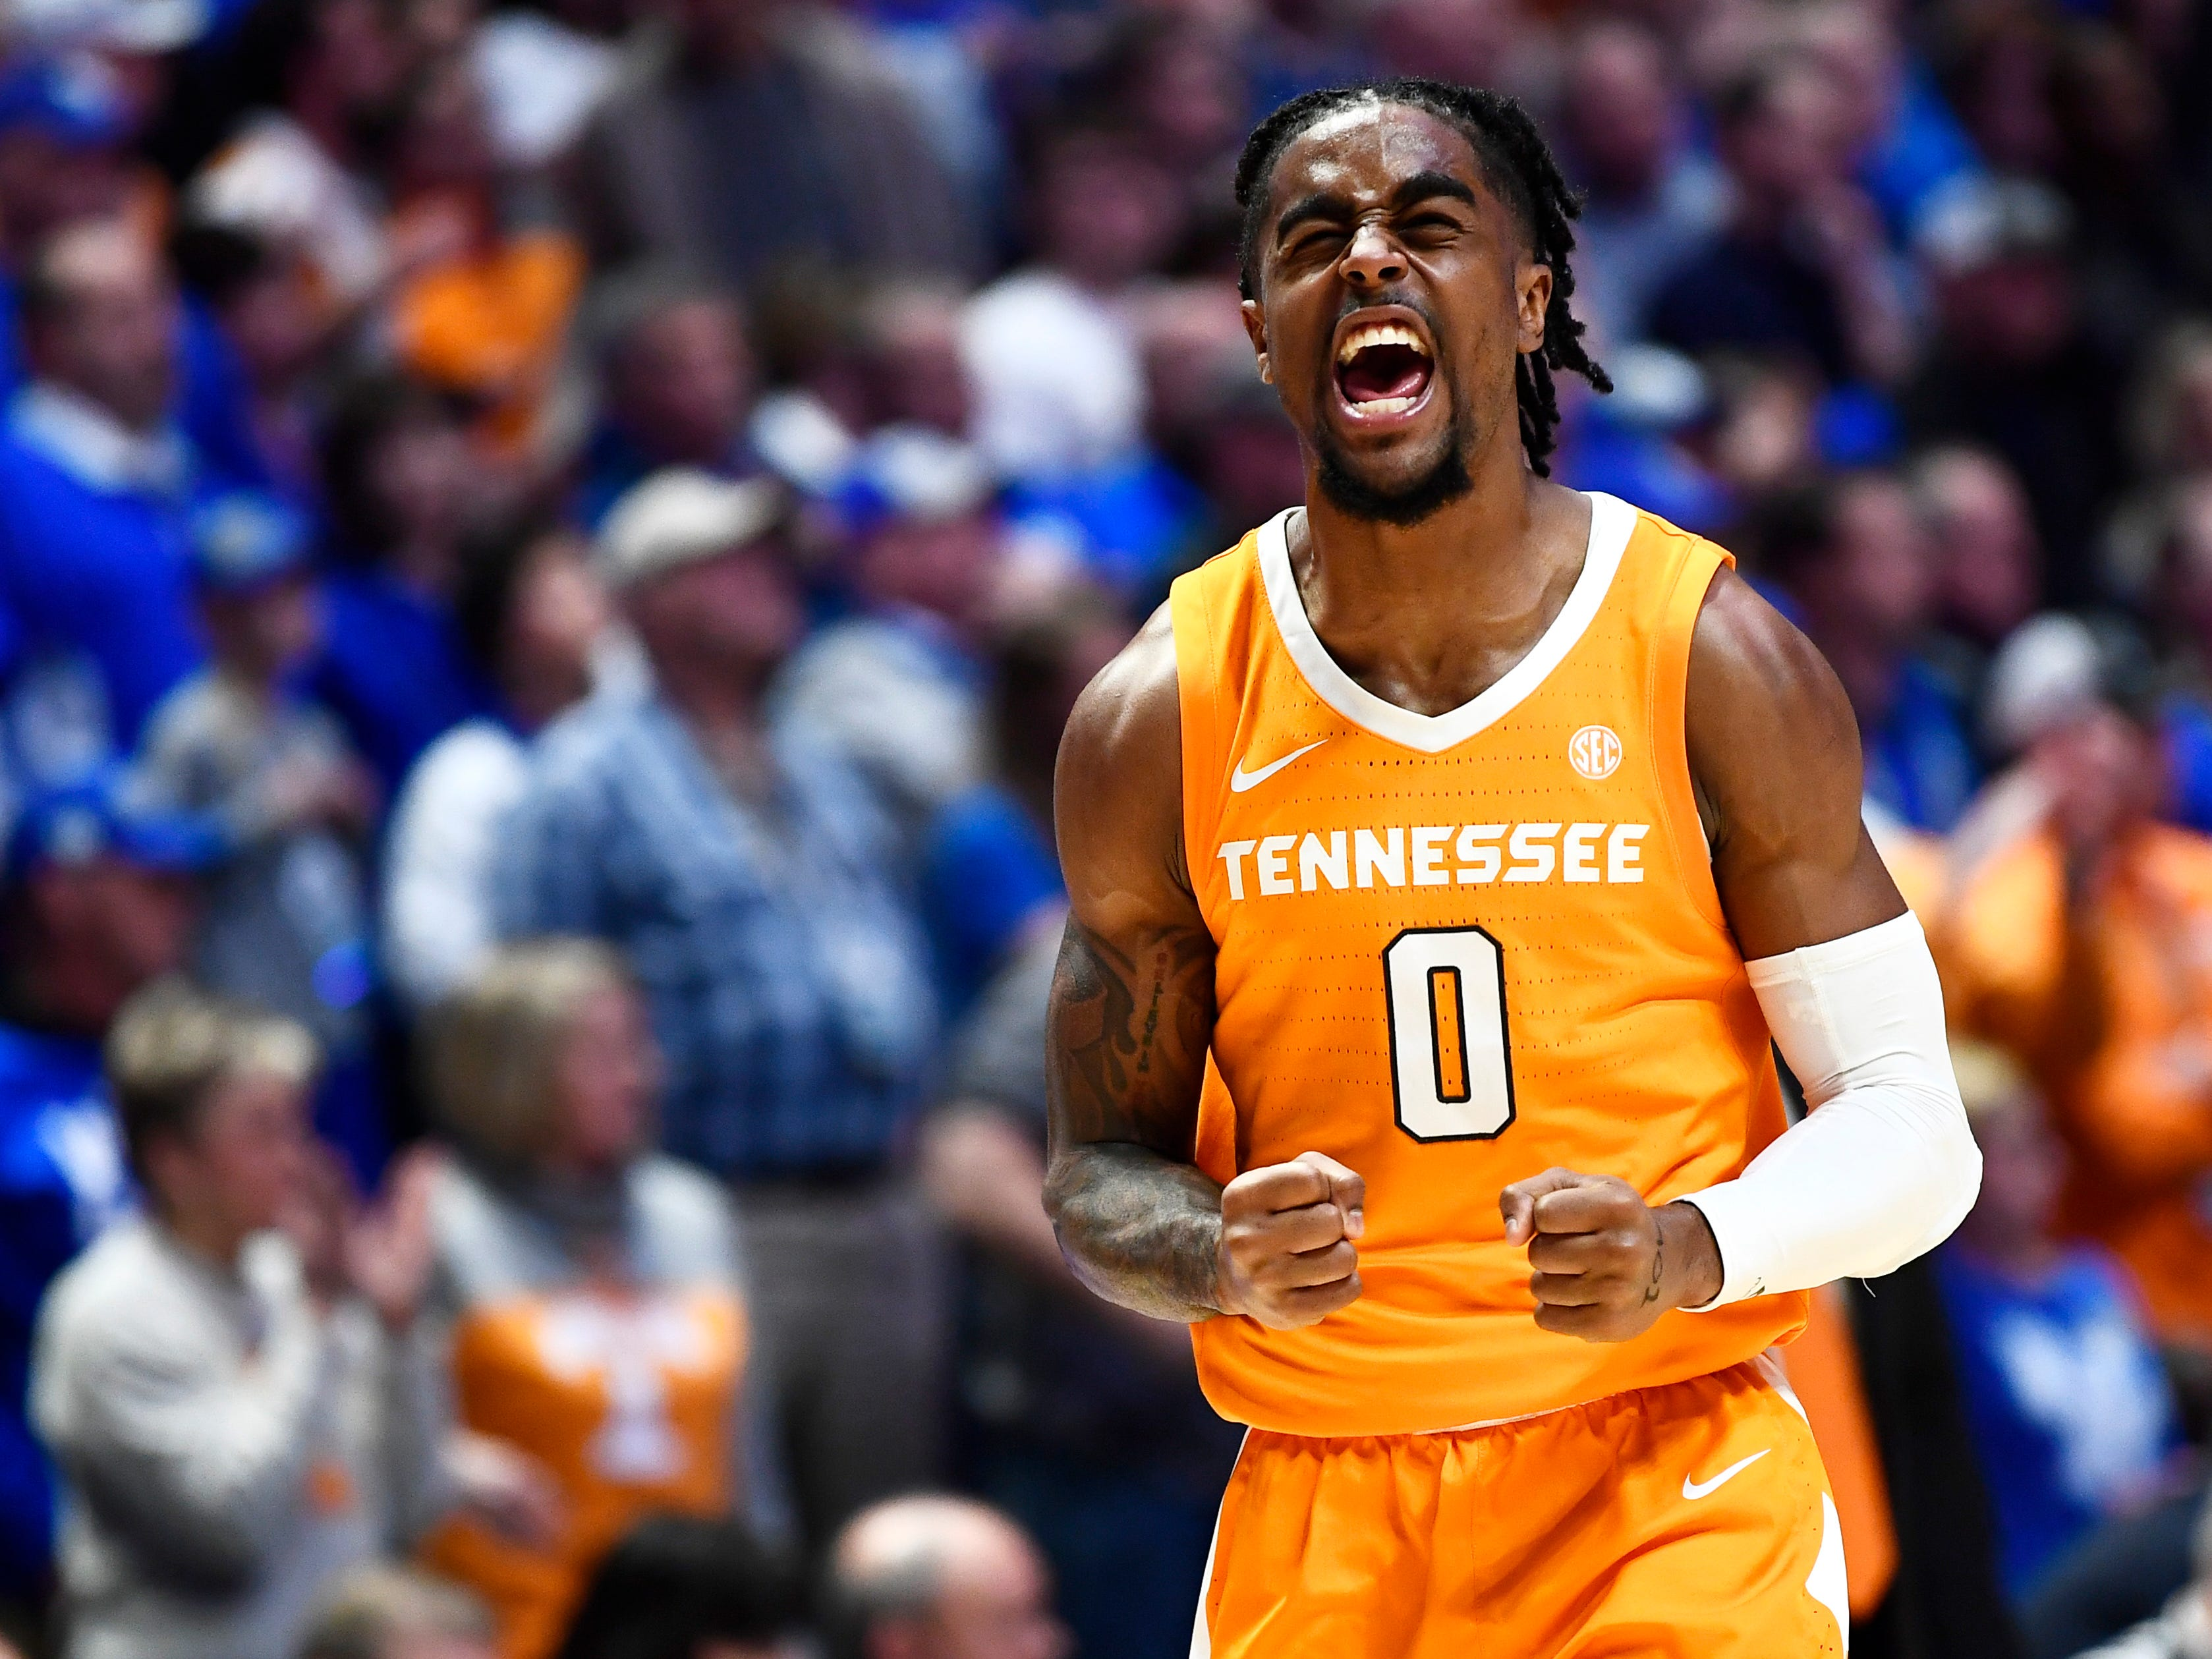 Tennessee guard Jordan Bone (0) reacts in the closing seconds in the team's win over Kentucky in the SEC Men's Basketball Tournament at Bridgestone Arena in Nashville, Tenn., Saturday, March 16, 2019.